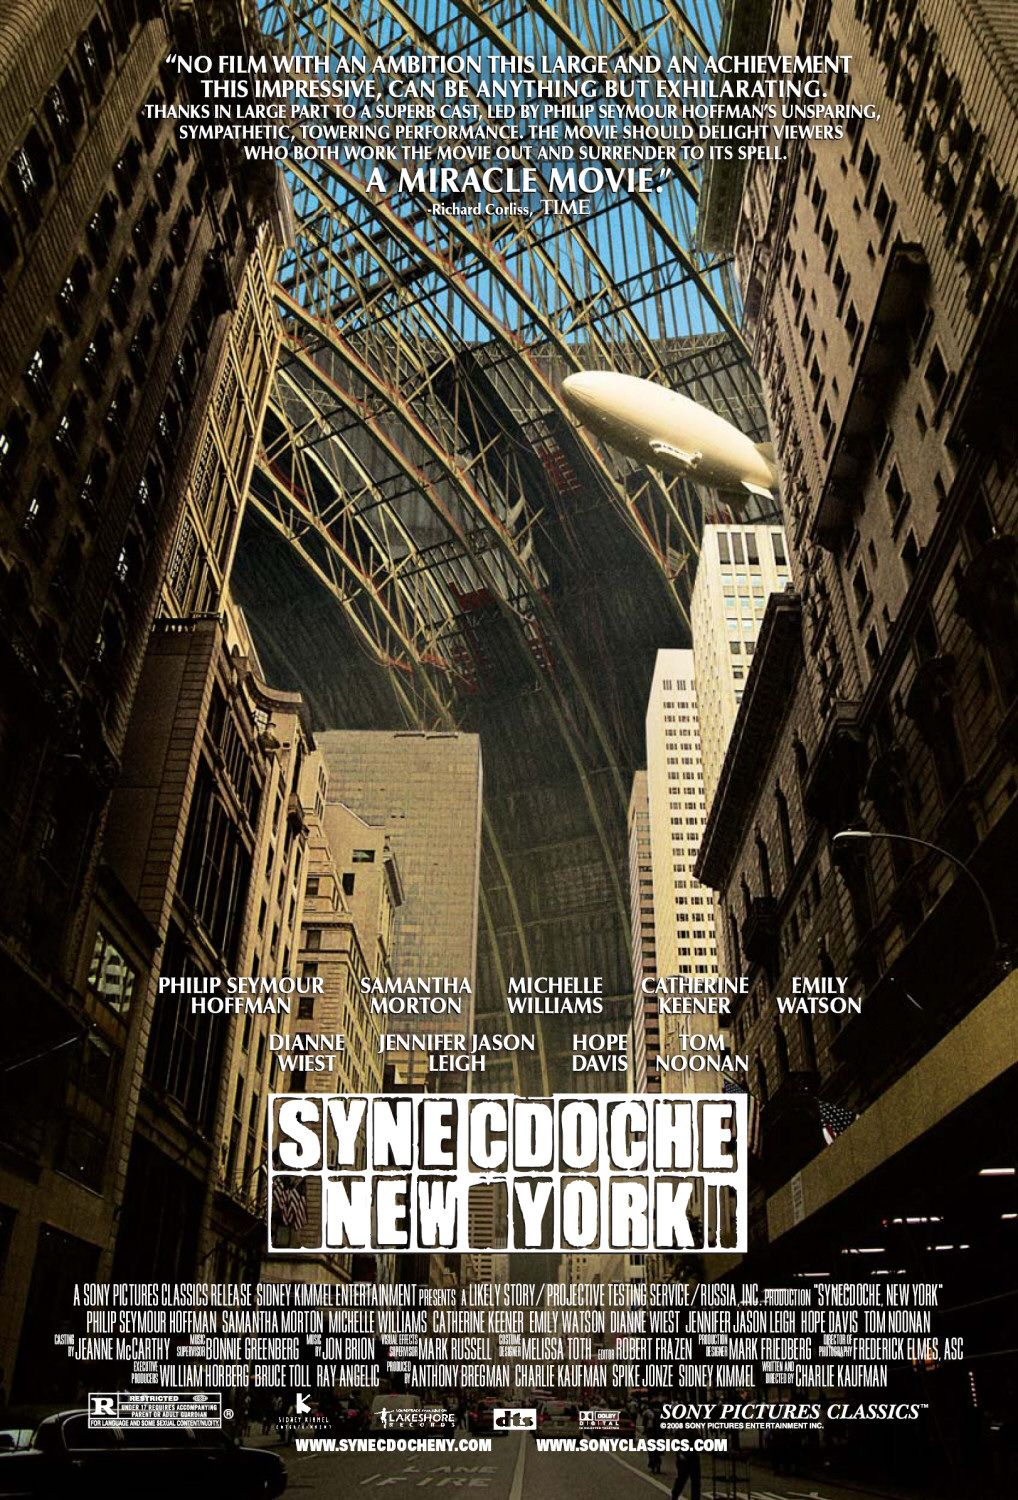 시네도키 뉴욕, Synecdoche New York, 2008